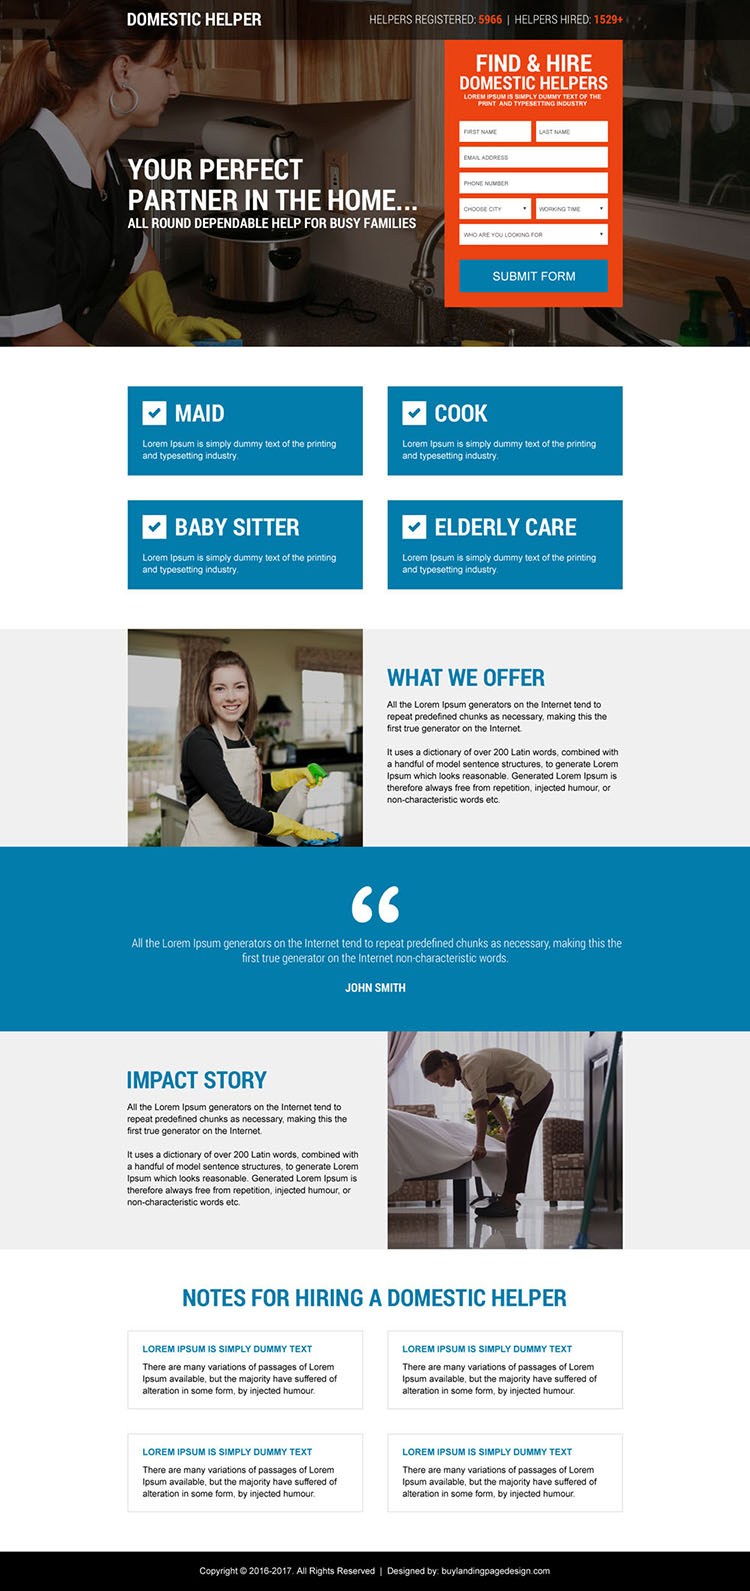 domestic help service lead form landing page design